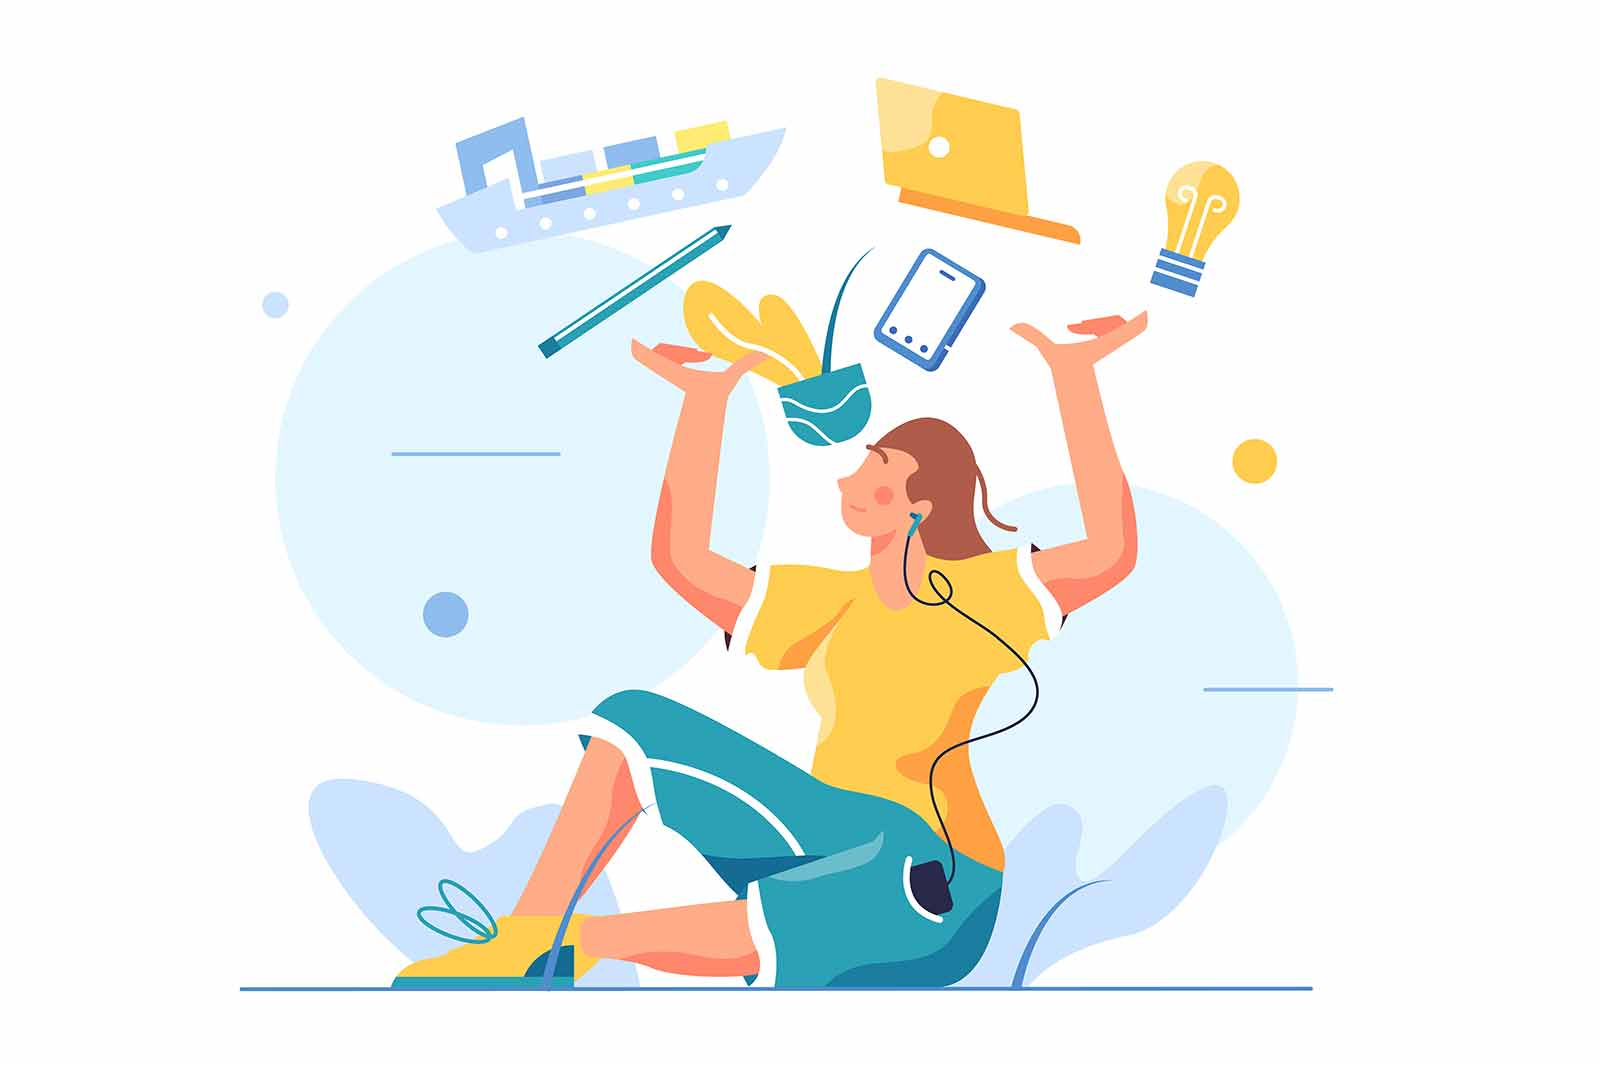 Woman sitting on the floor and holding things in her hands, computer, phone, karandish, ship, girl in headphones isolated on white background, flat vector illustration